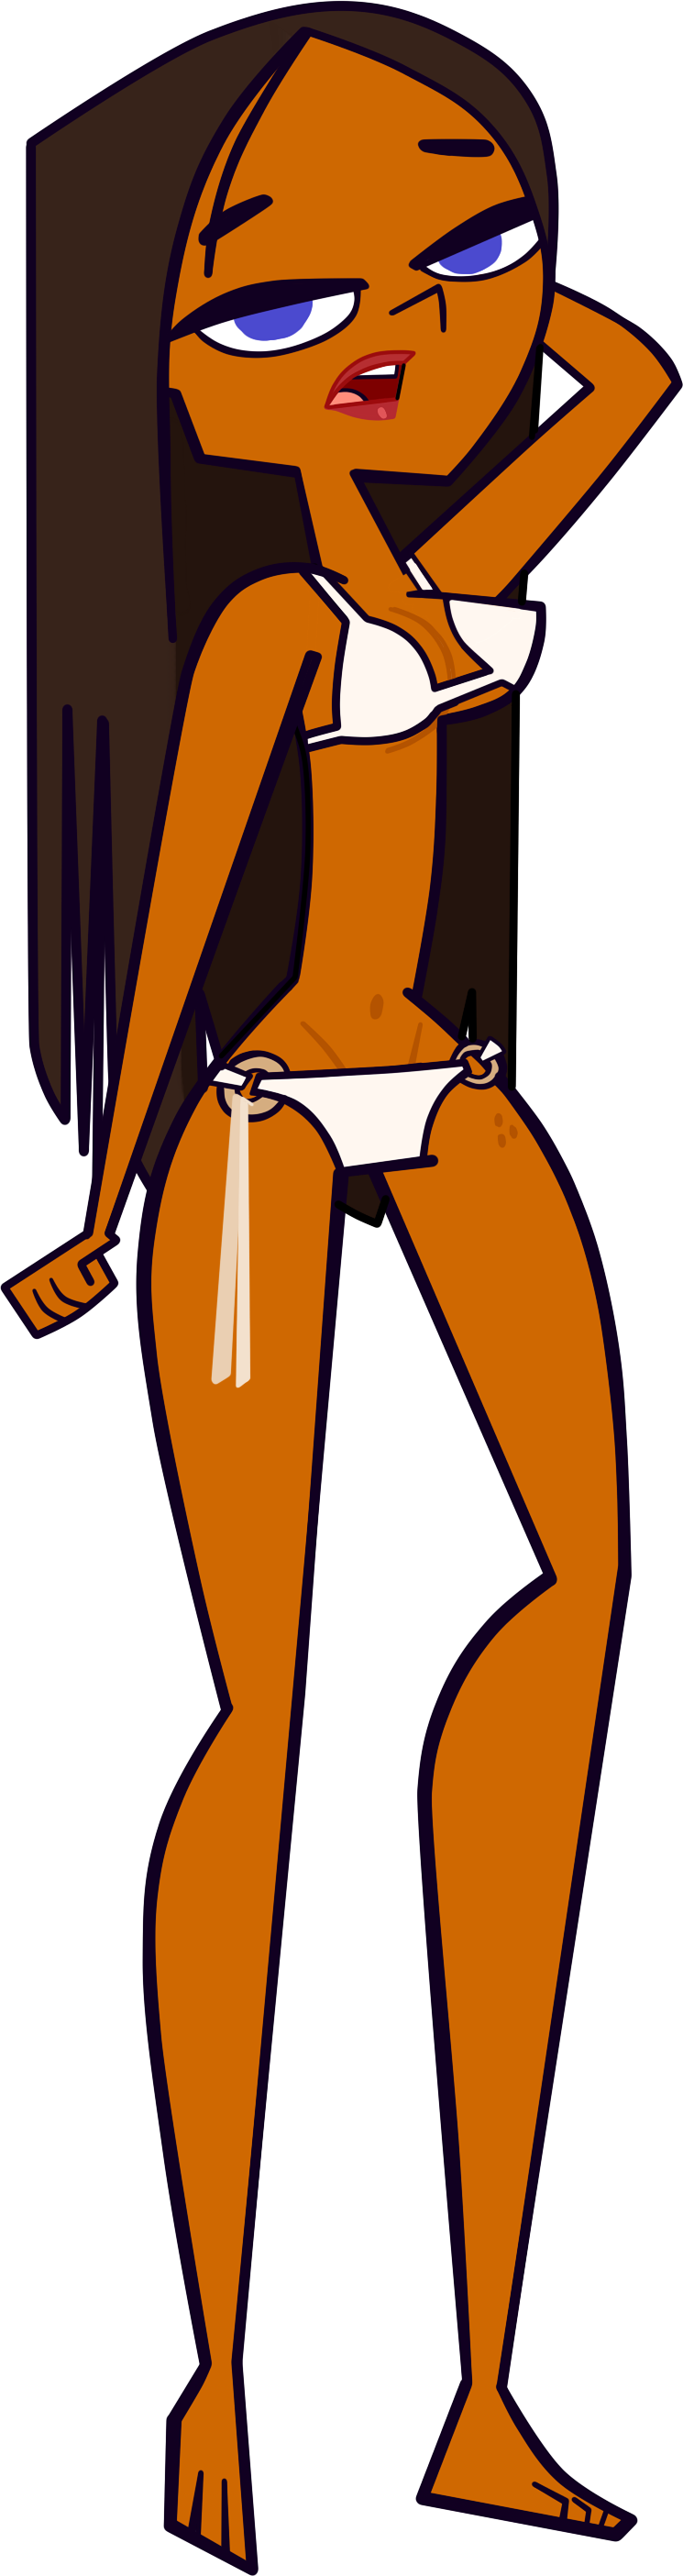 total_drama_model___challenge_01_by_tdcarly14-d846t7s.png (745×2809)